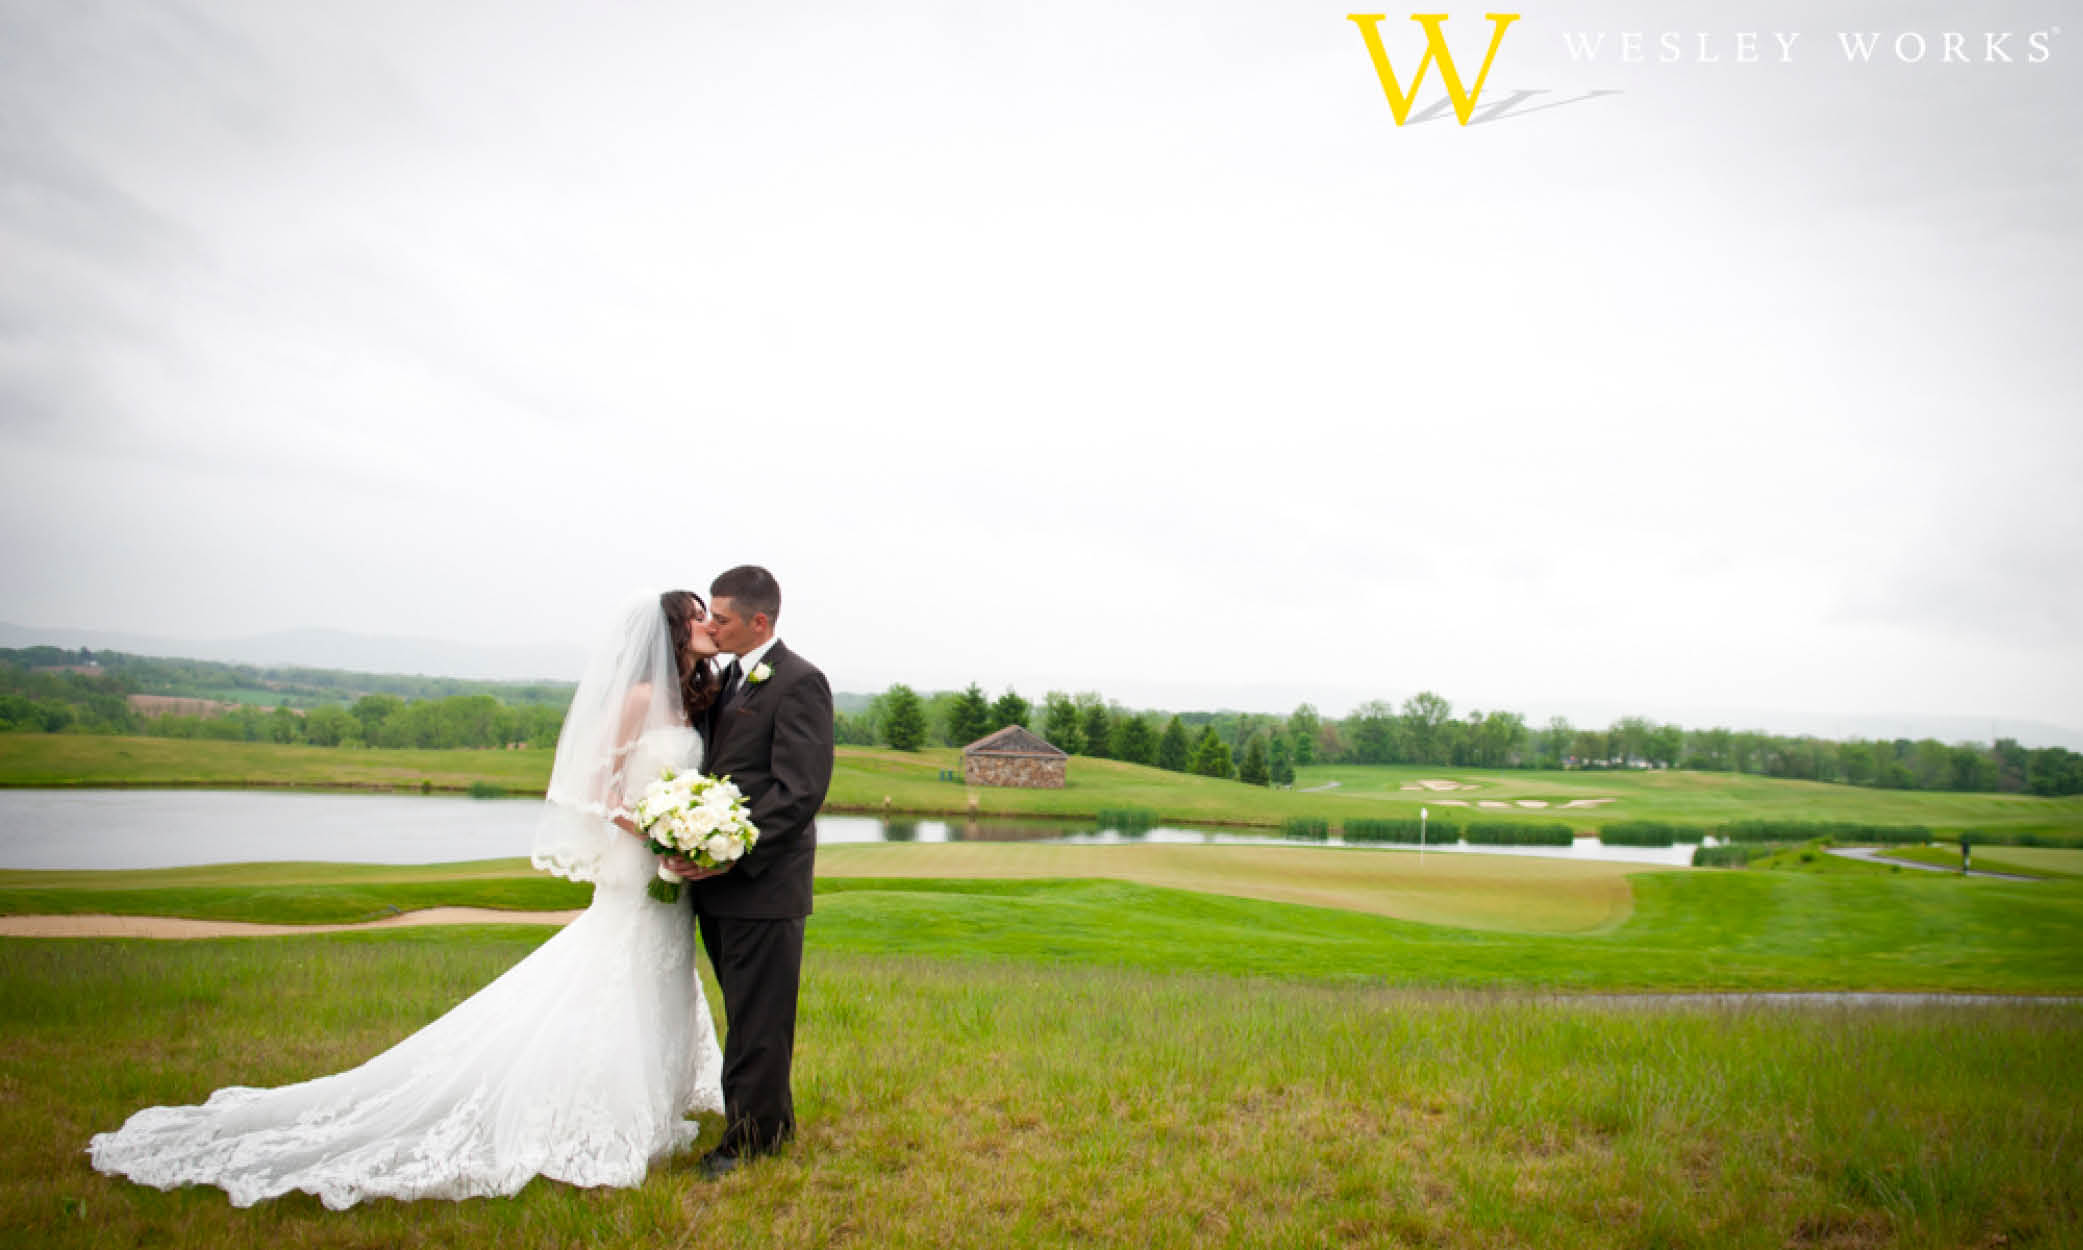 Wedding: a selection of sites